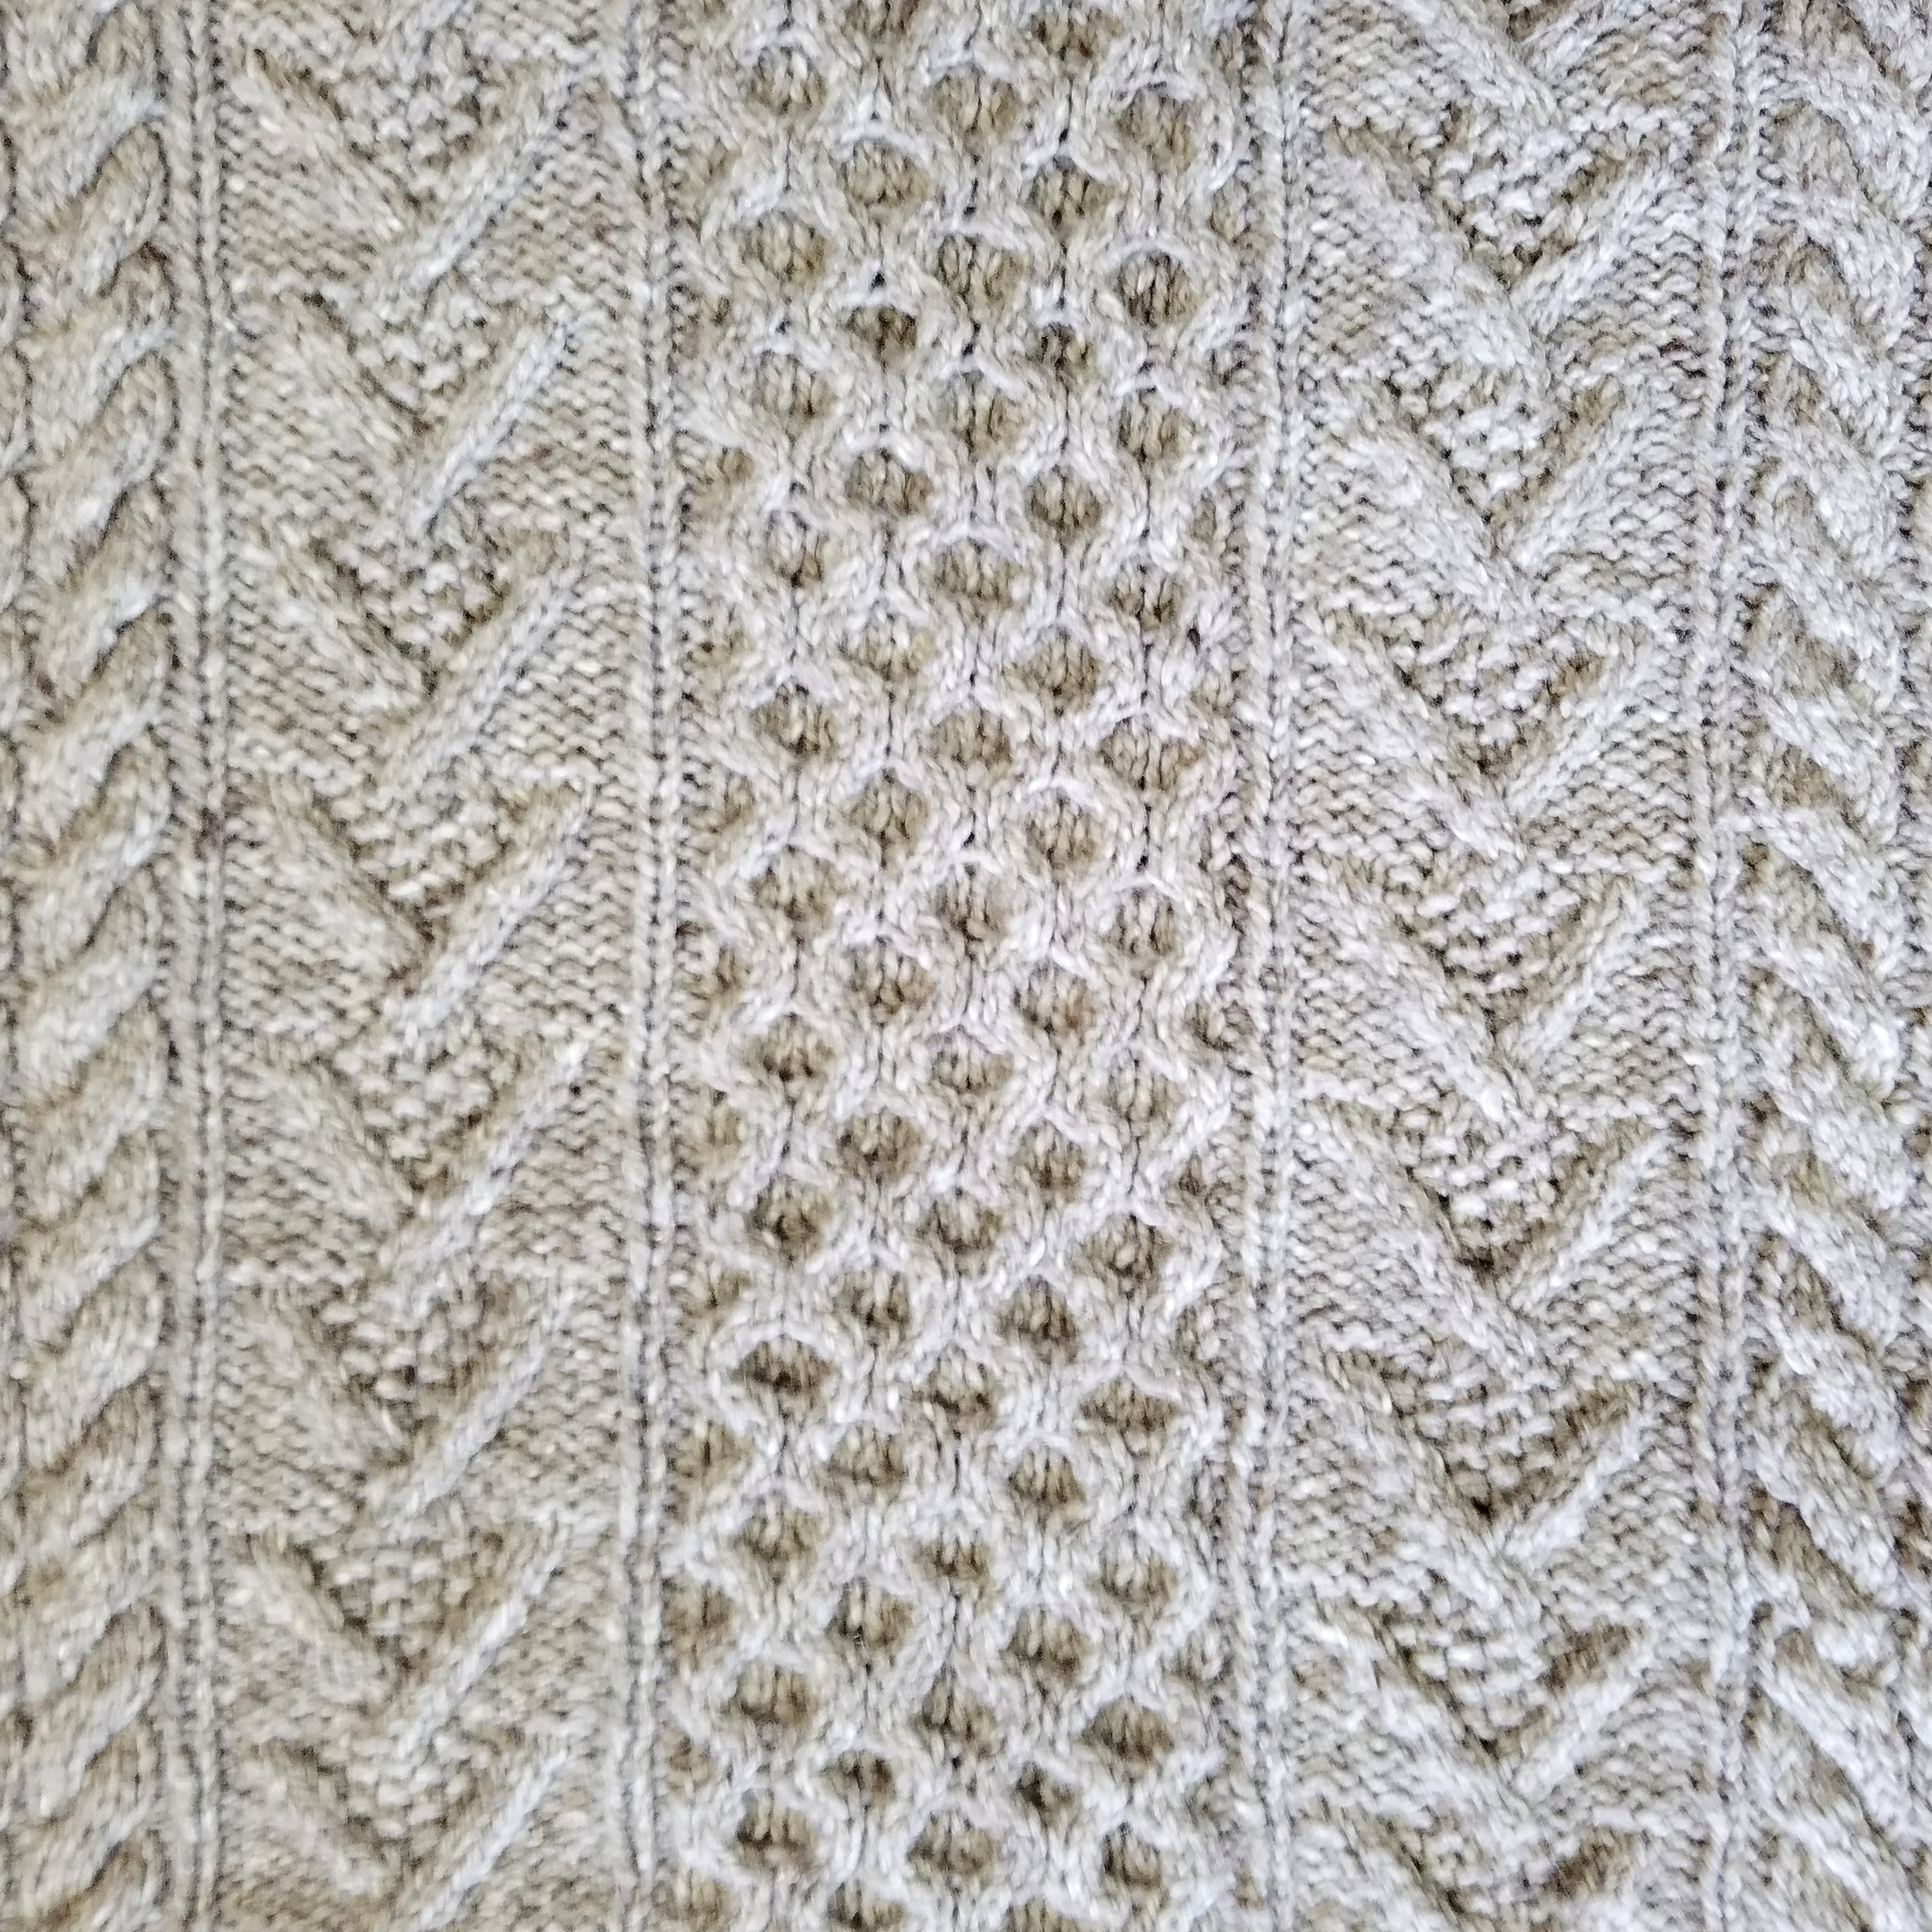 Details from my finished sweater. I've already worn this at least half a dozen times since finishing it last week!